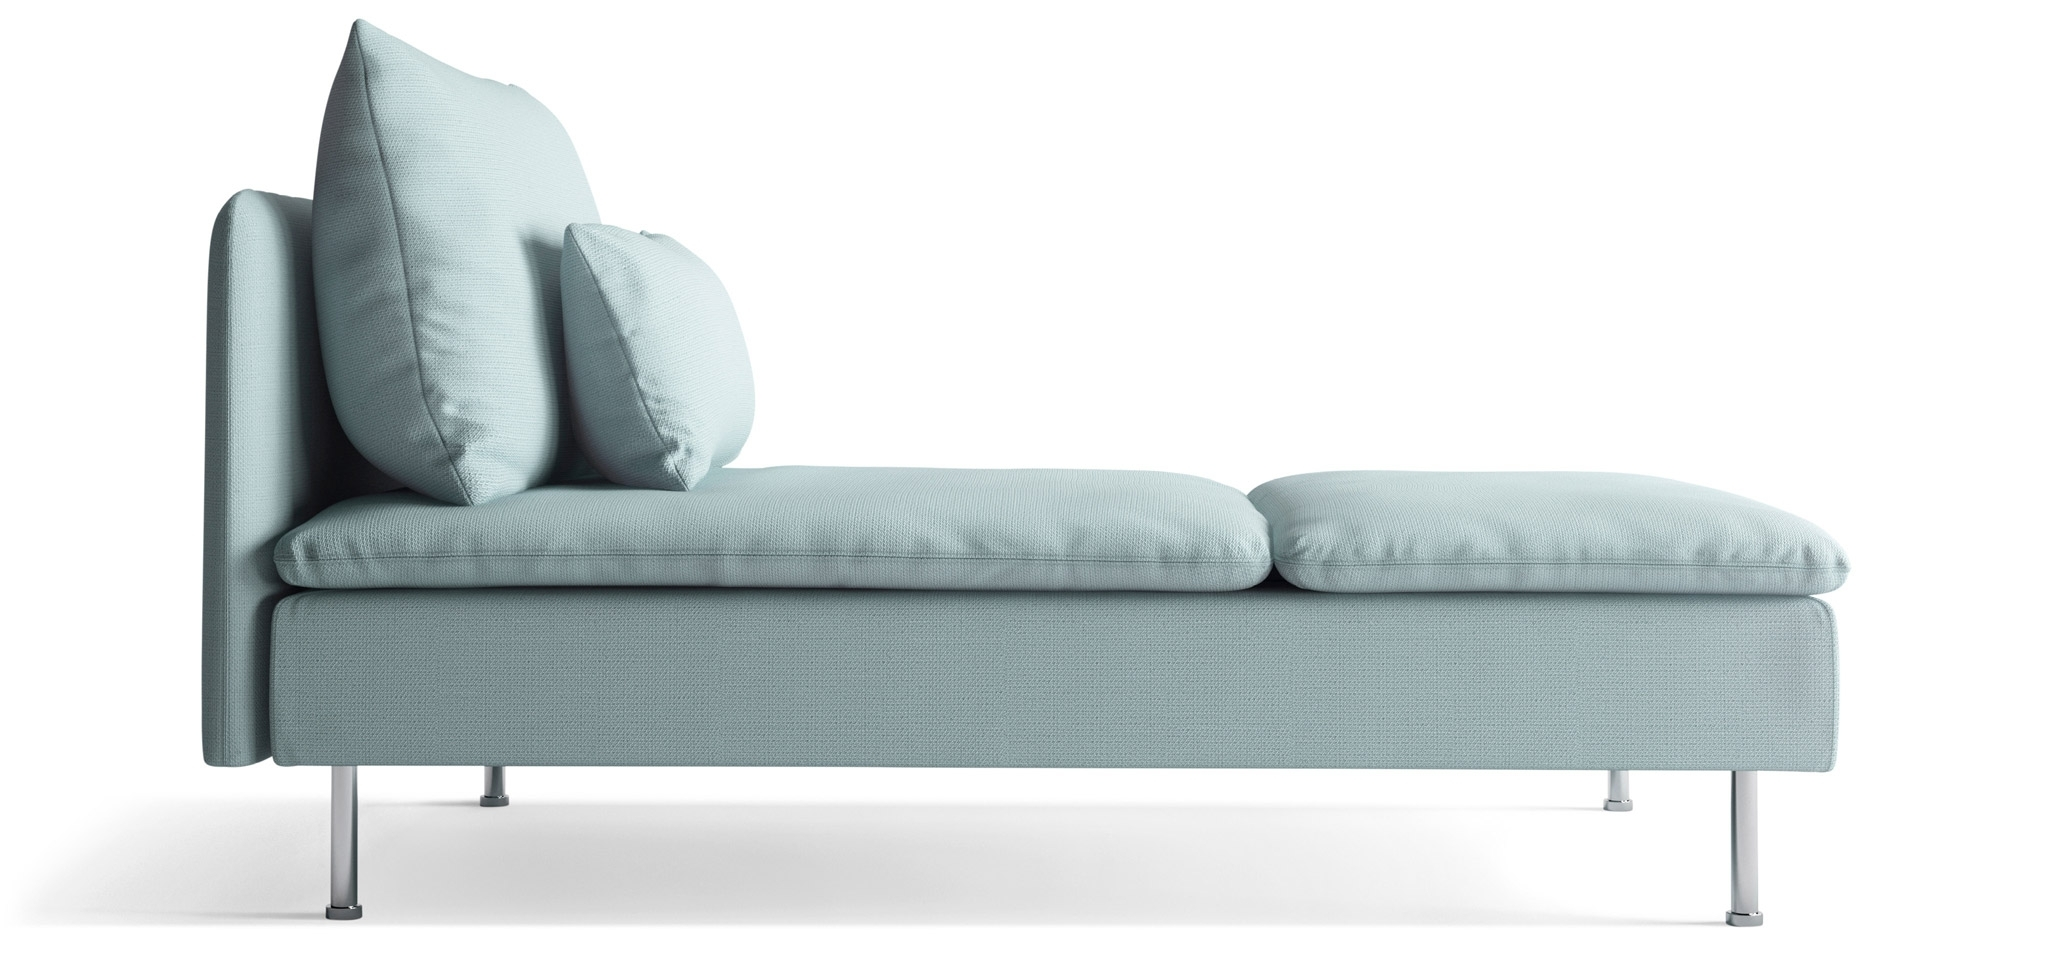 Ikea Ireland – Dublin Pertaining To Ikea Chaise Lounges (Gallery 14 of 15)